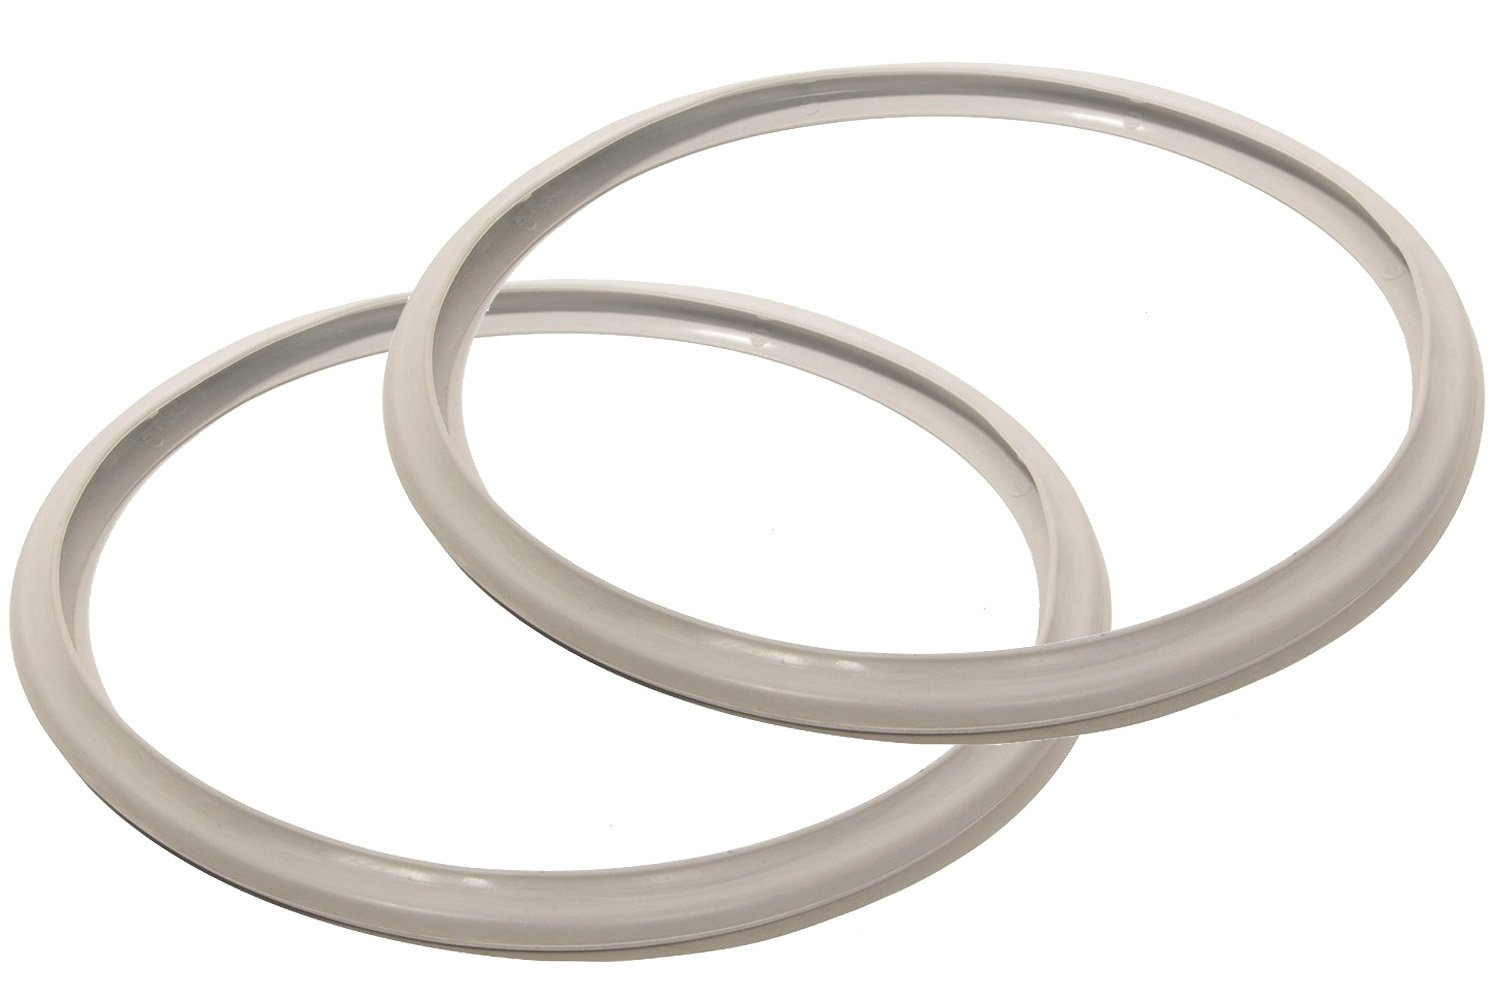 10 Inch Fagor Pressure Cooker Replacement Gasket (Pack of 2) - Fits Many 10 inch Fagor Stovetop Models (Check Description for Fit) Impresa Products BHBUSAZIN025134